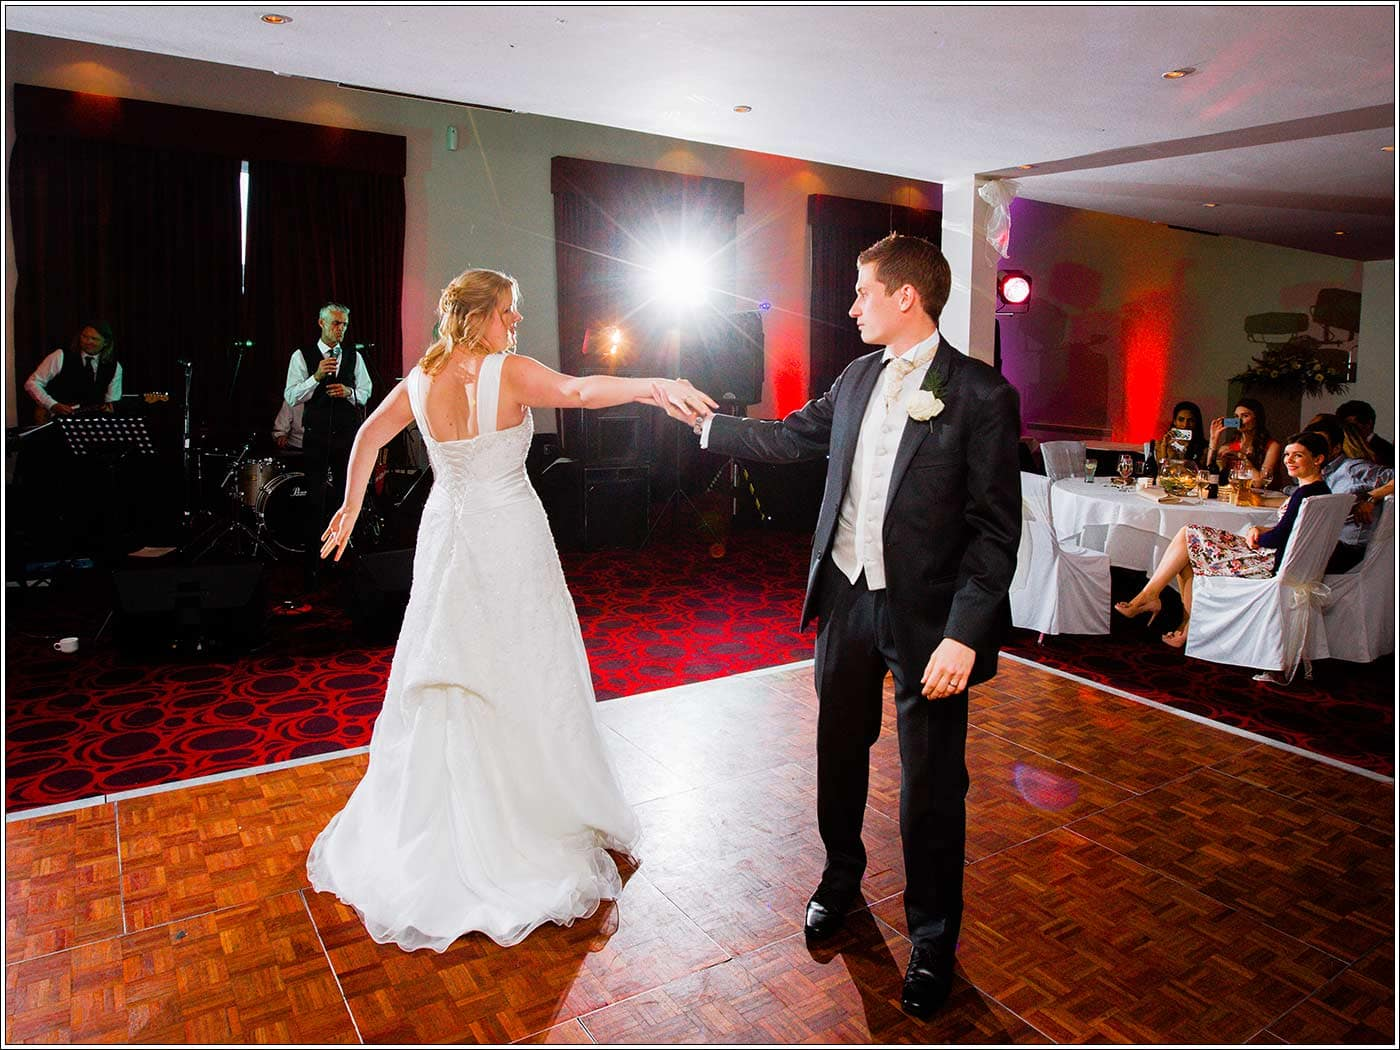 First dance at Walton Hall wedding